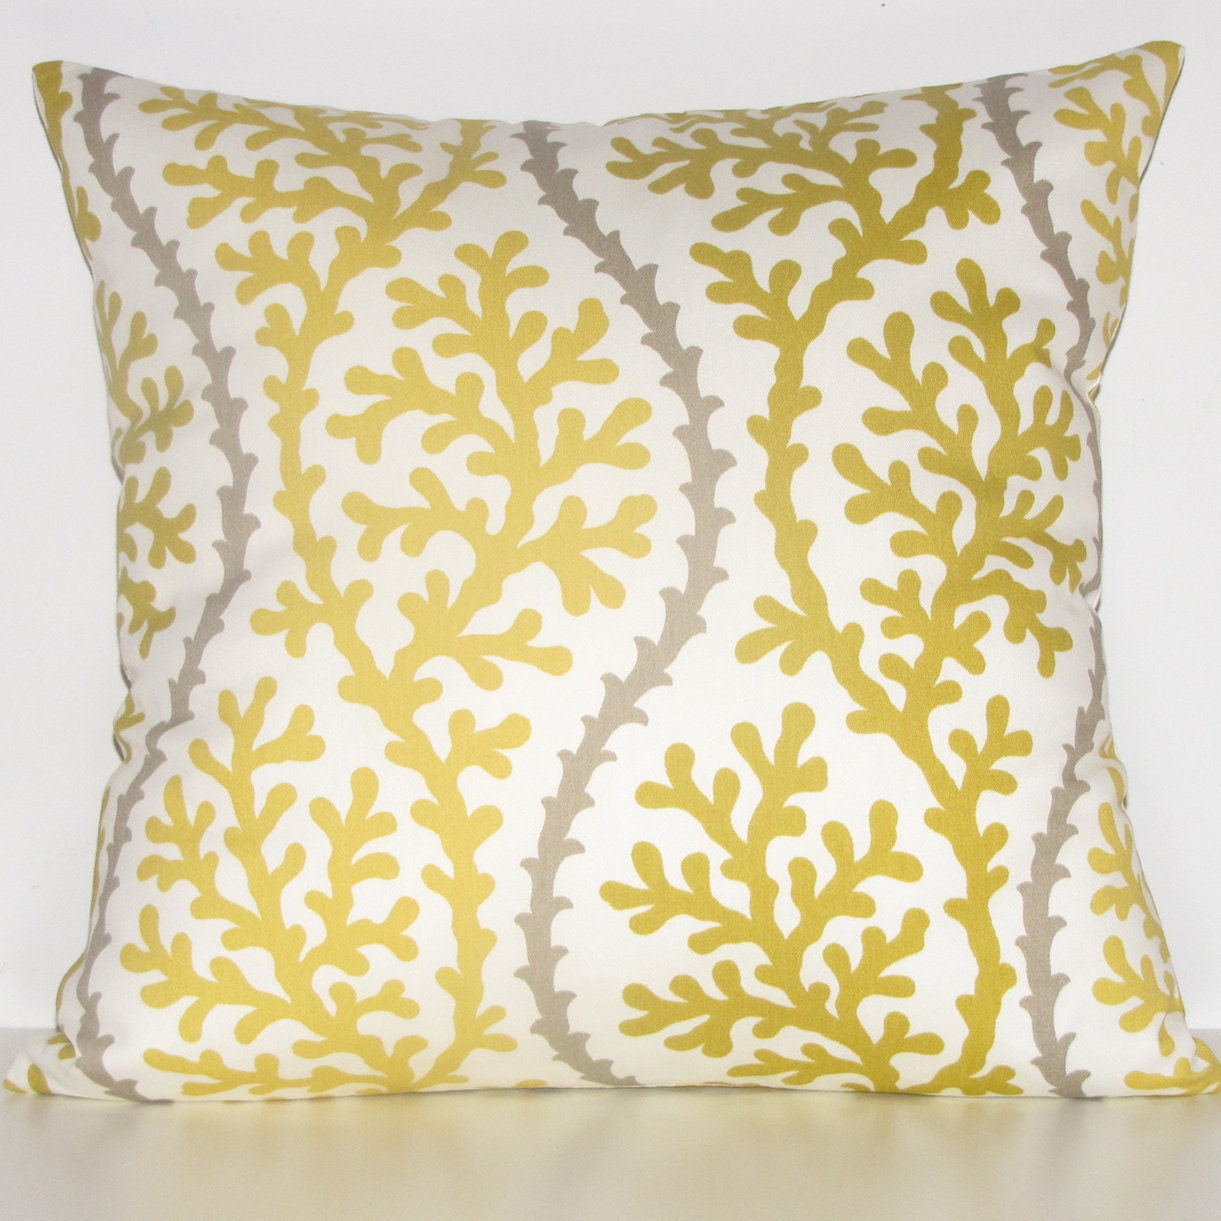 Decorative Pillow Yellow : YELLOW coral pillows 16sq FREE SHIPPING